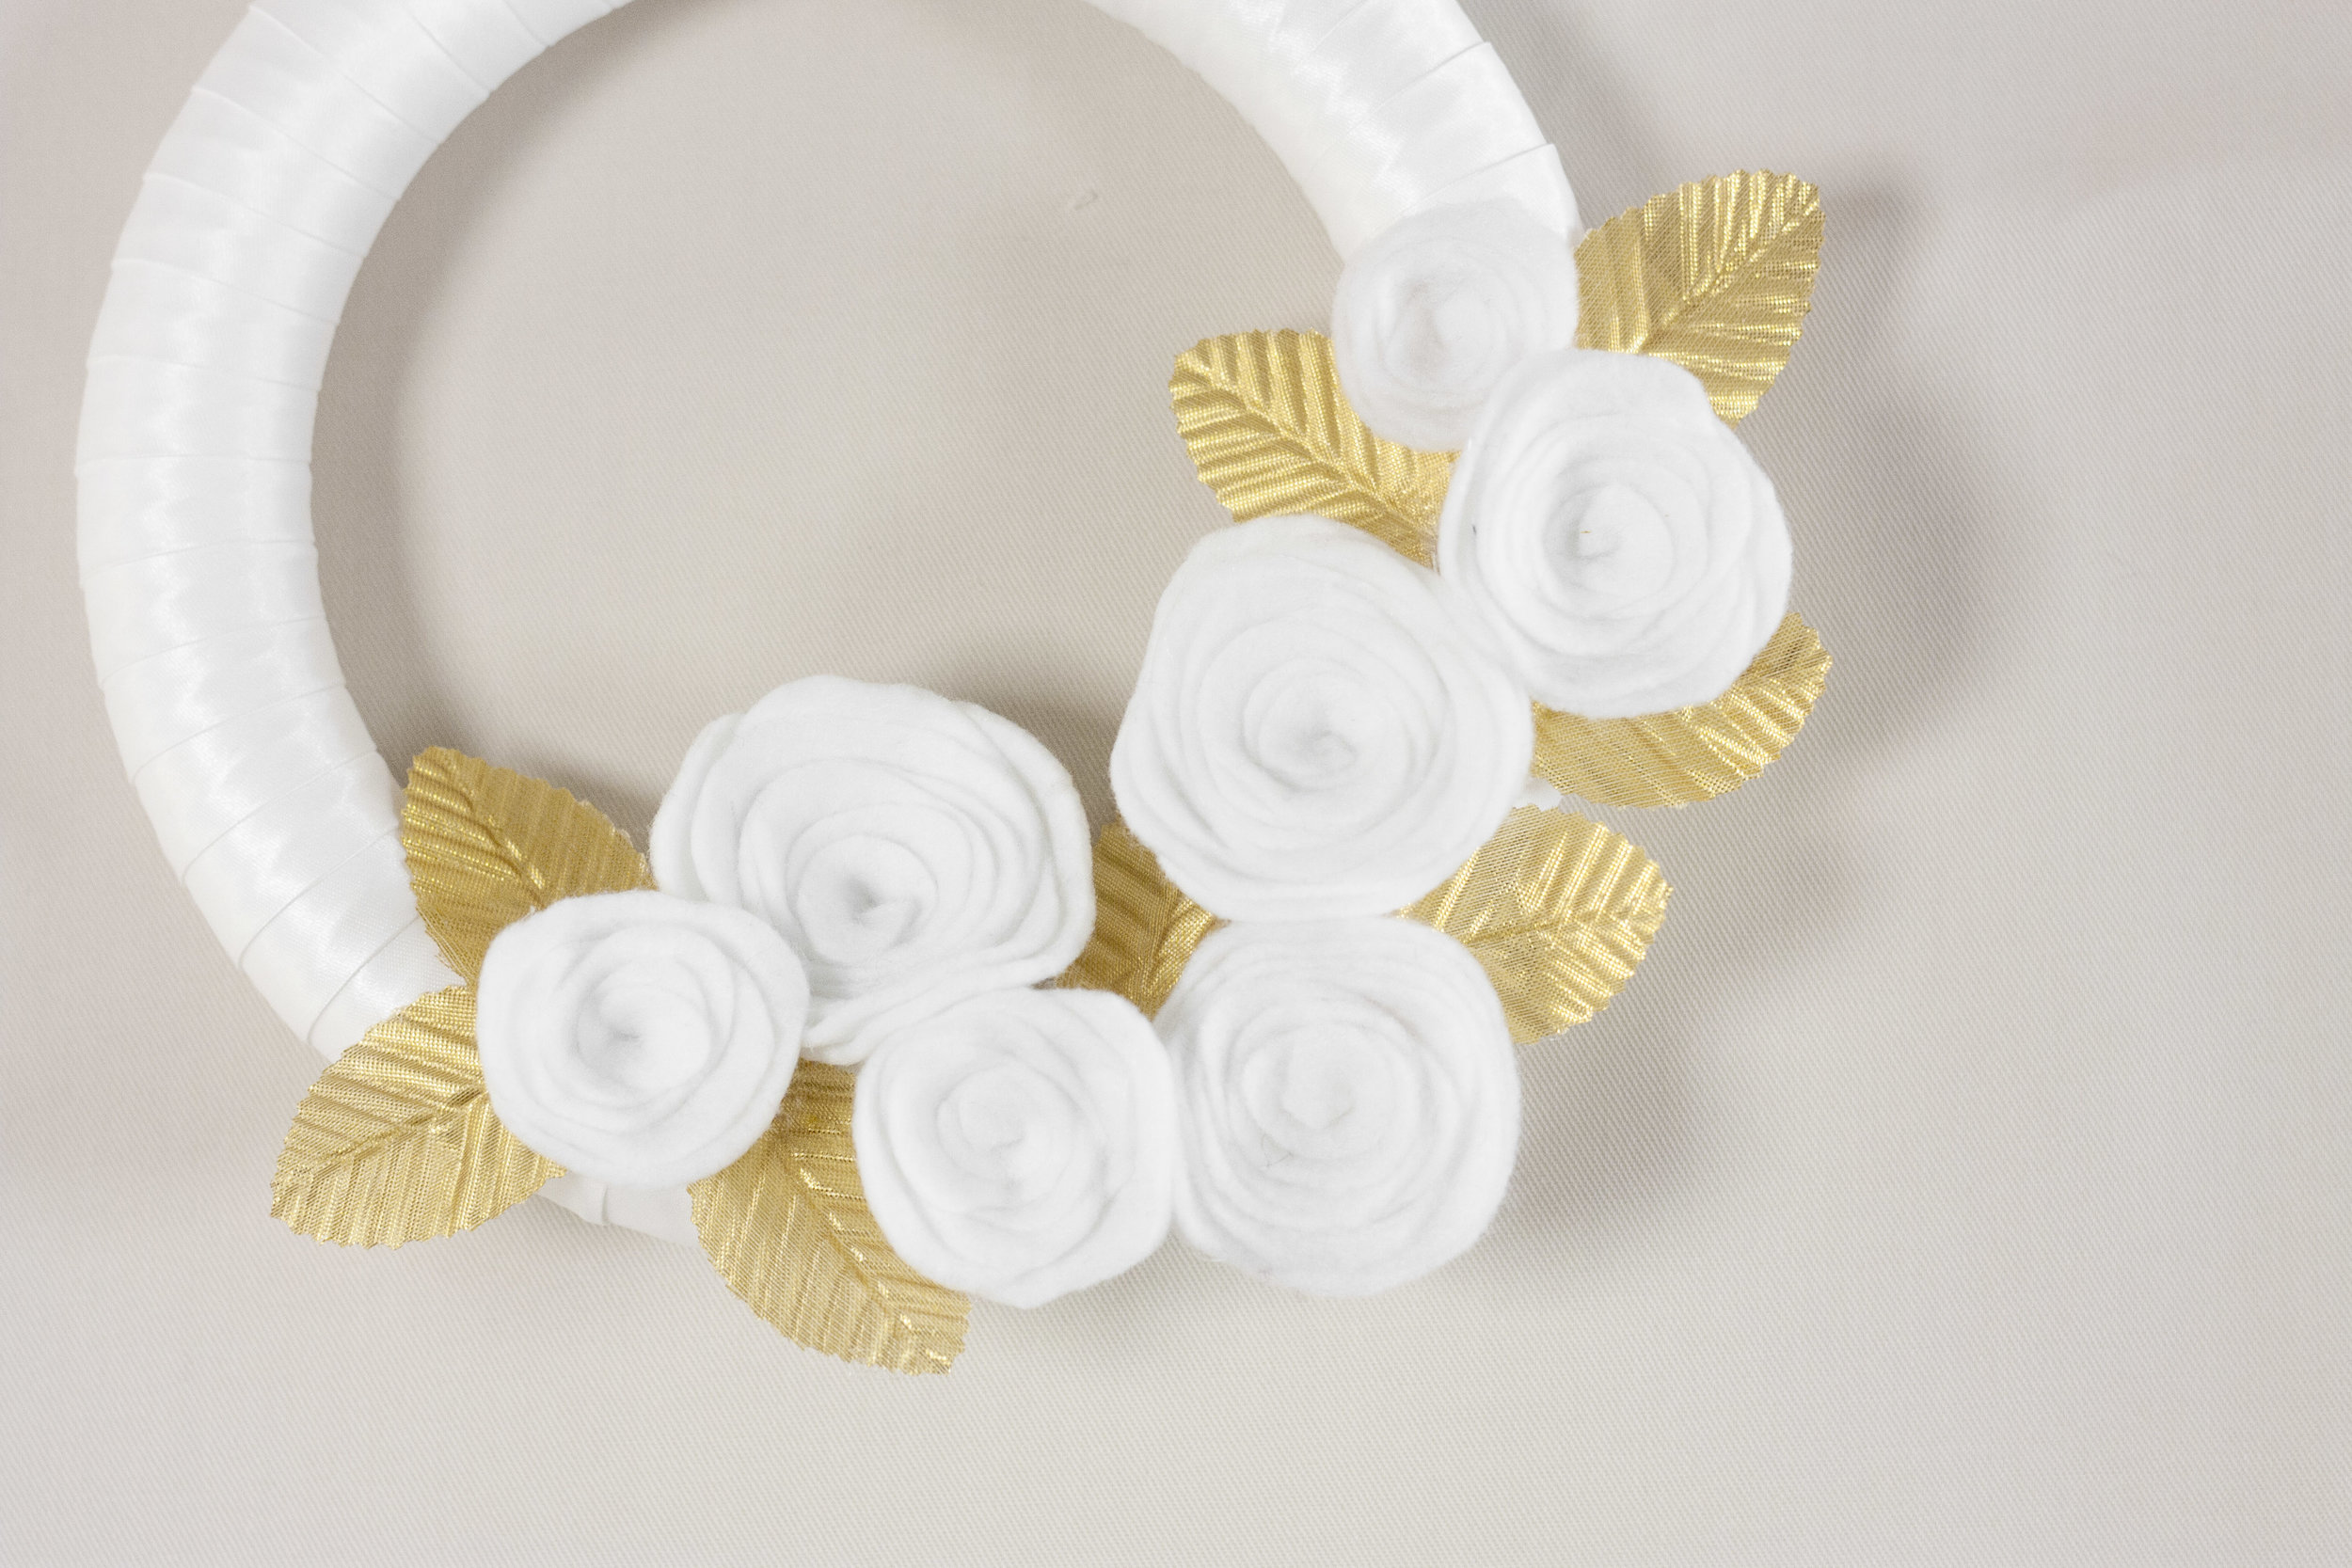 FELT white rose textile wreath workshop sm.jpg